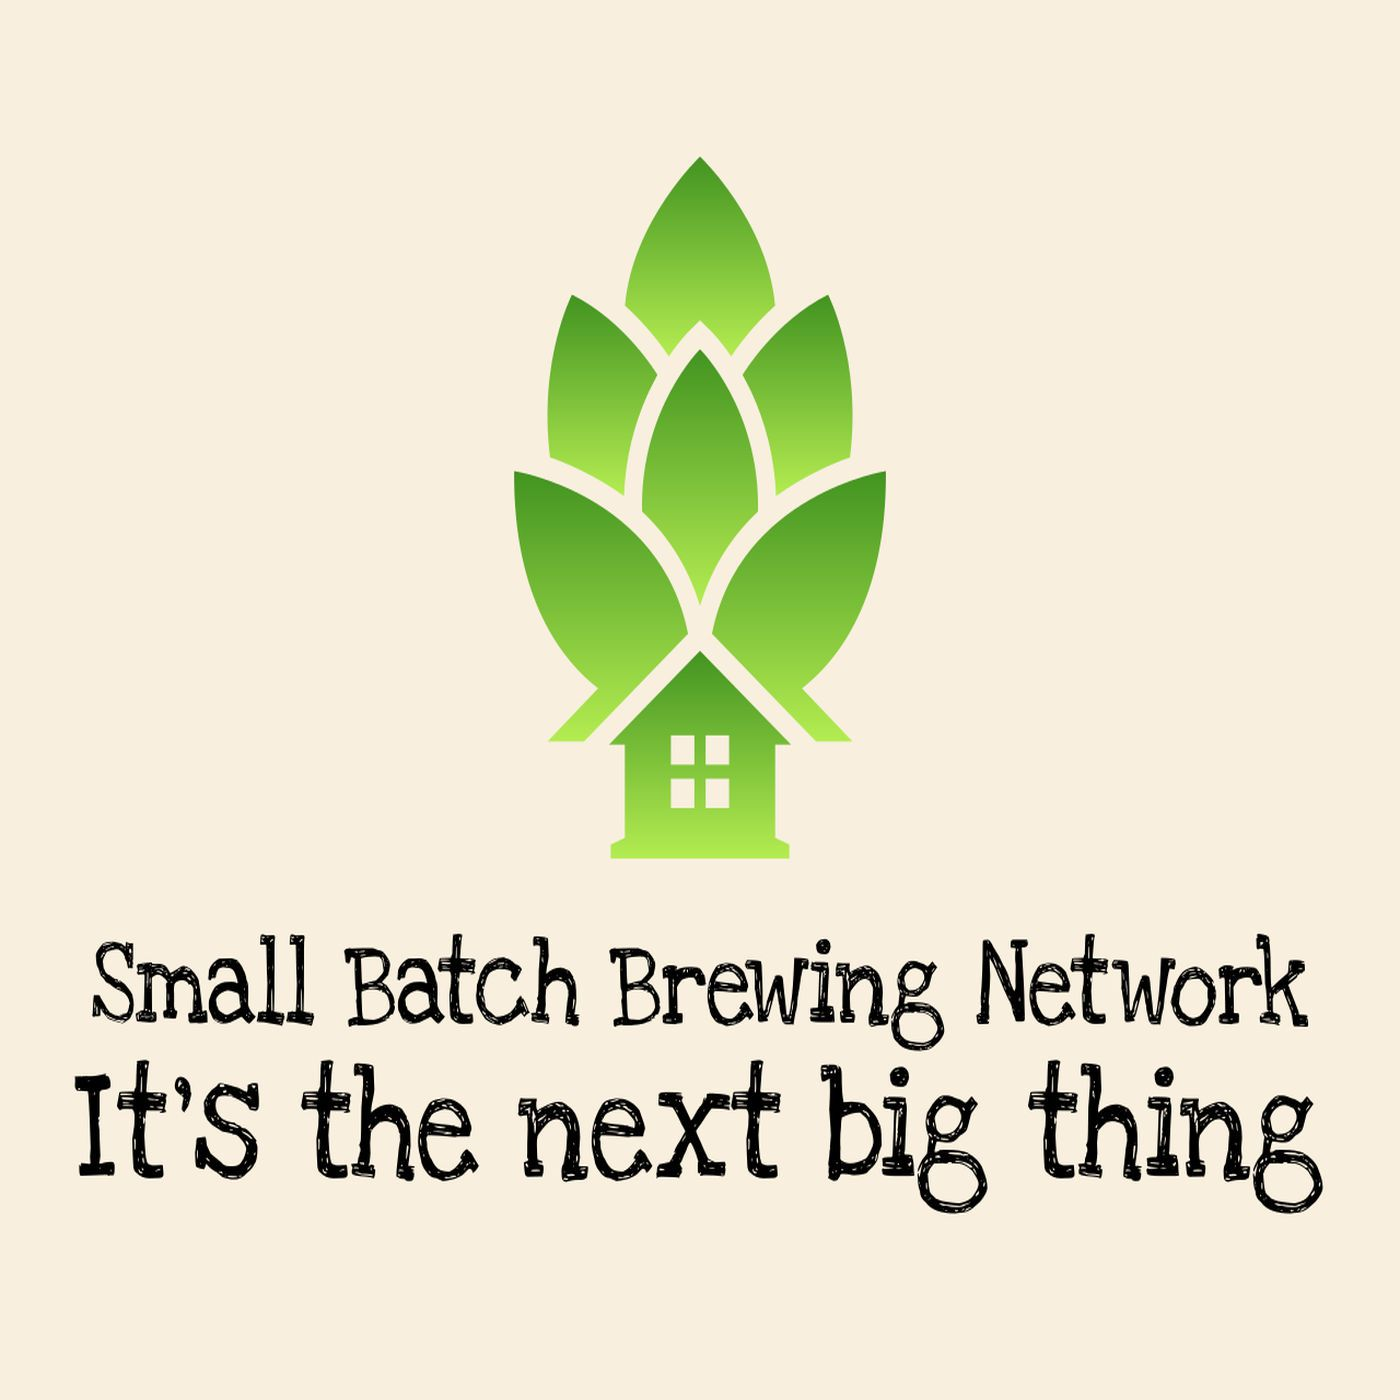 Small Batch Brewing Network